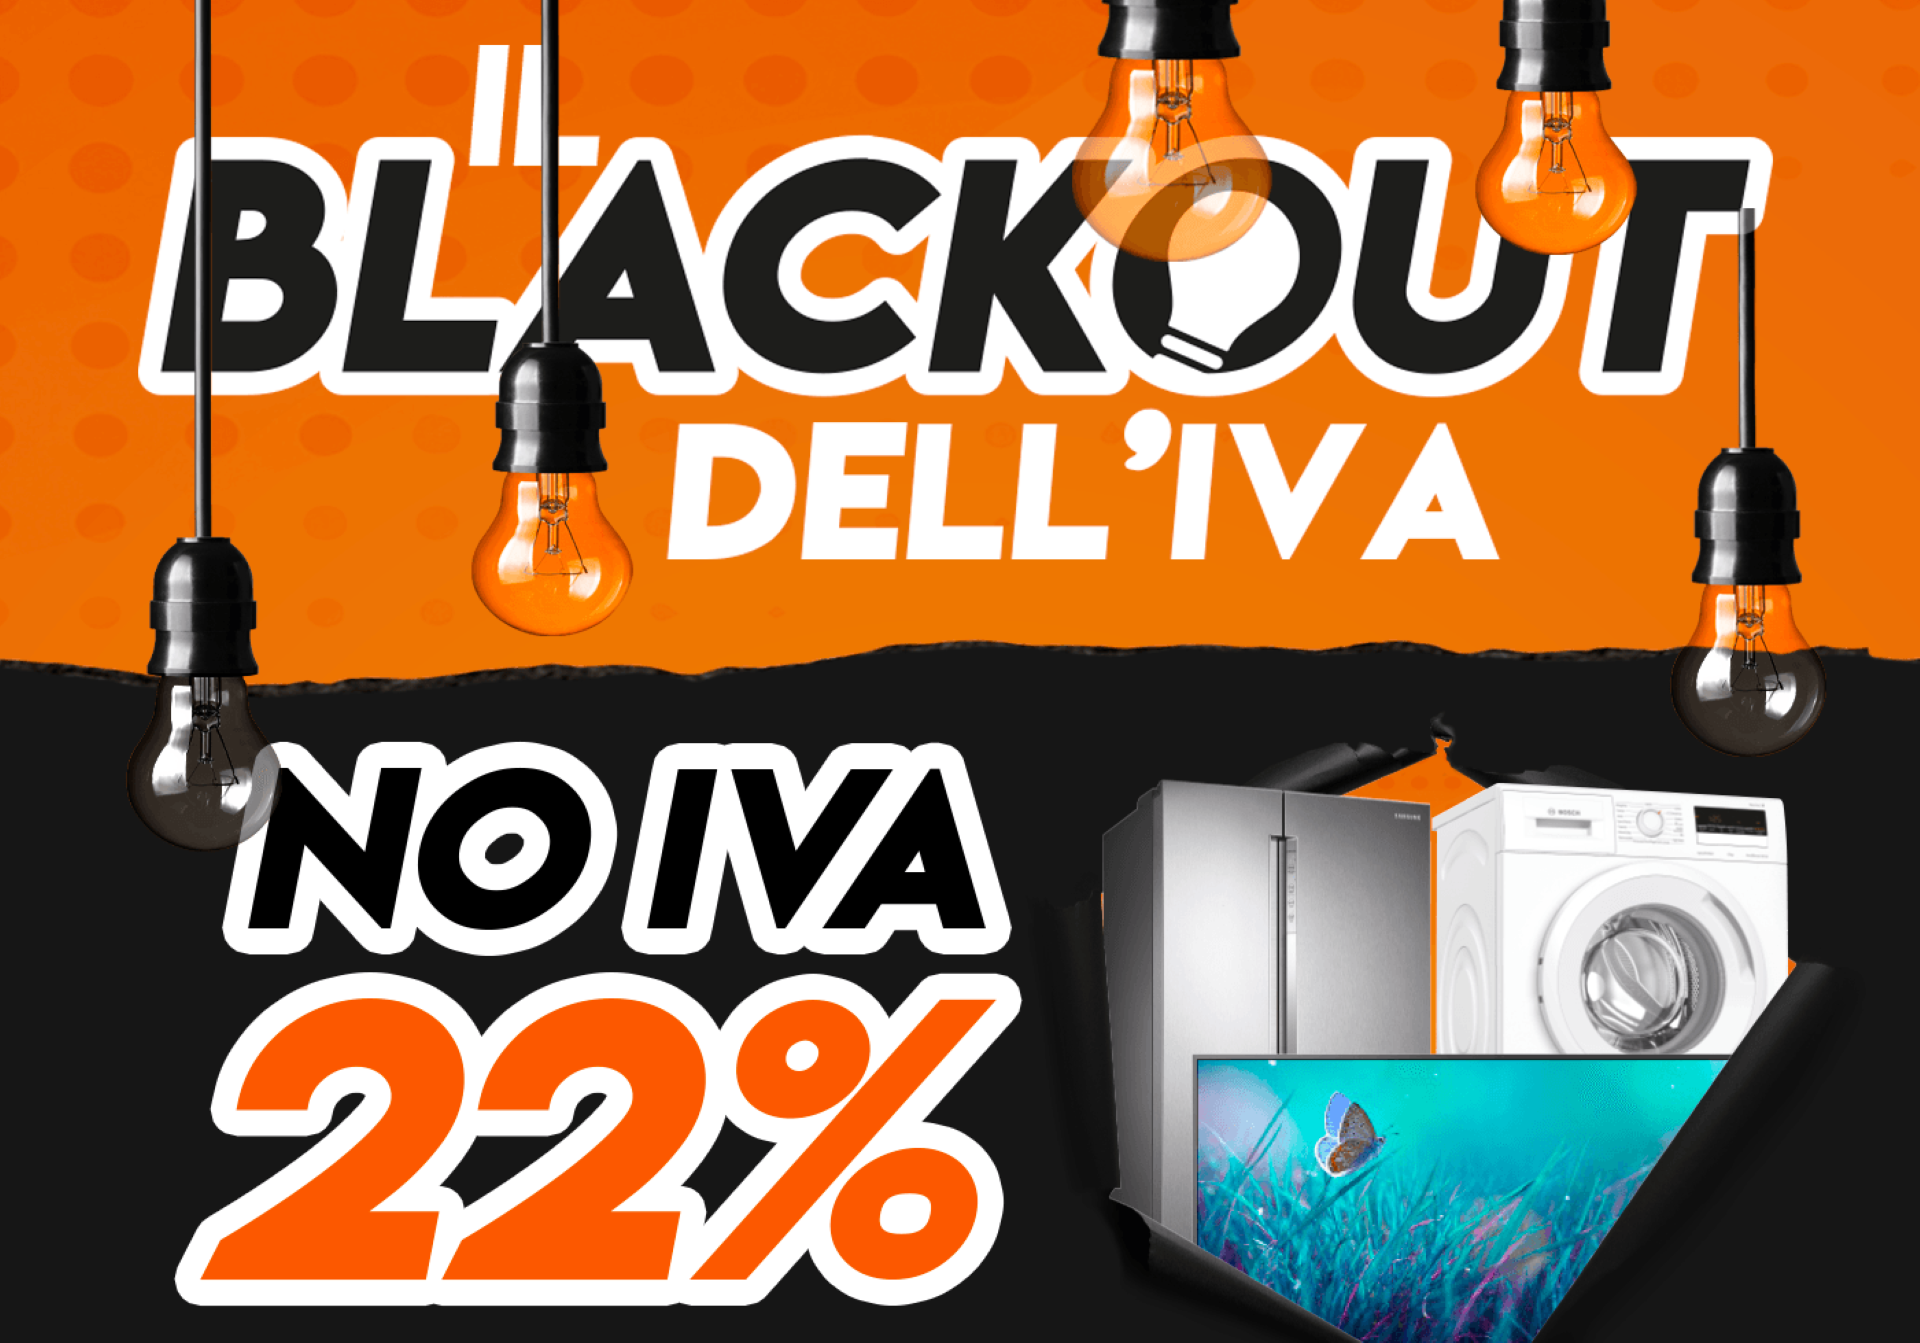 """Il Blackout dell'IVA"" di Expert ci dà un assaggio di Black Friday"